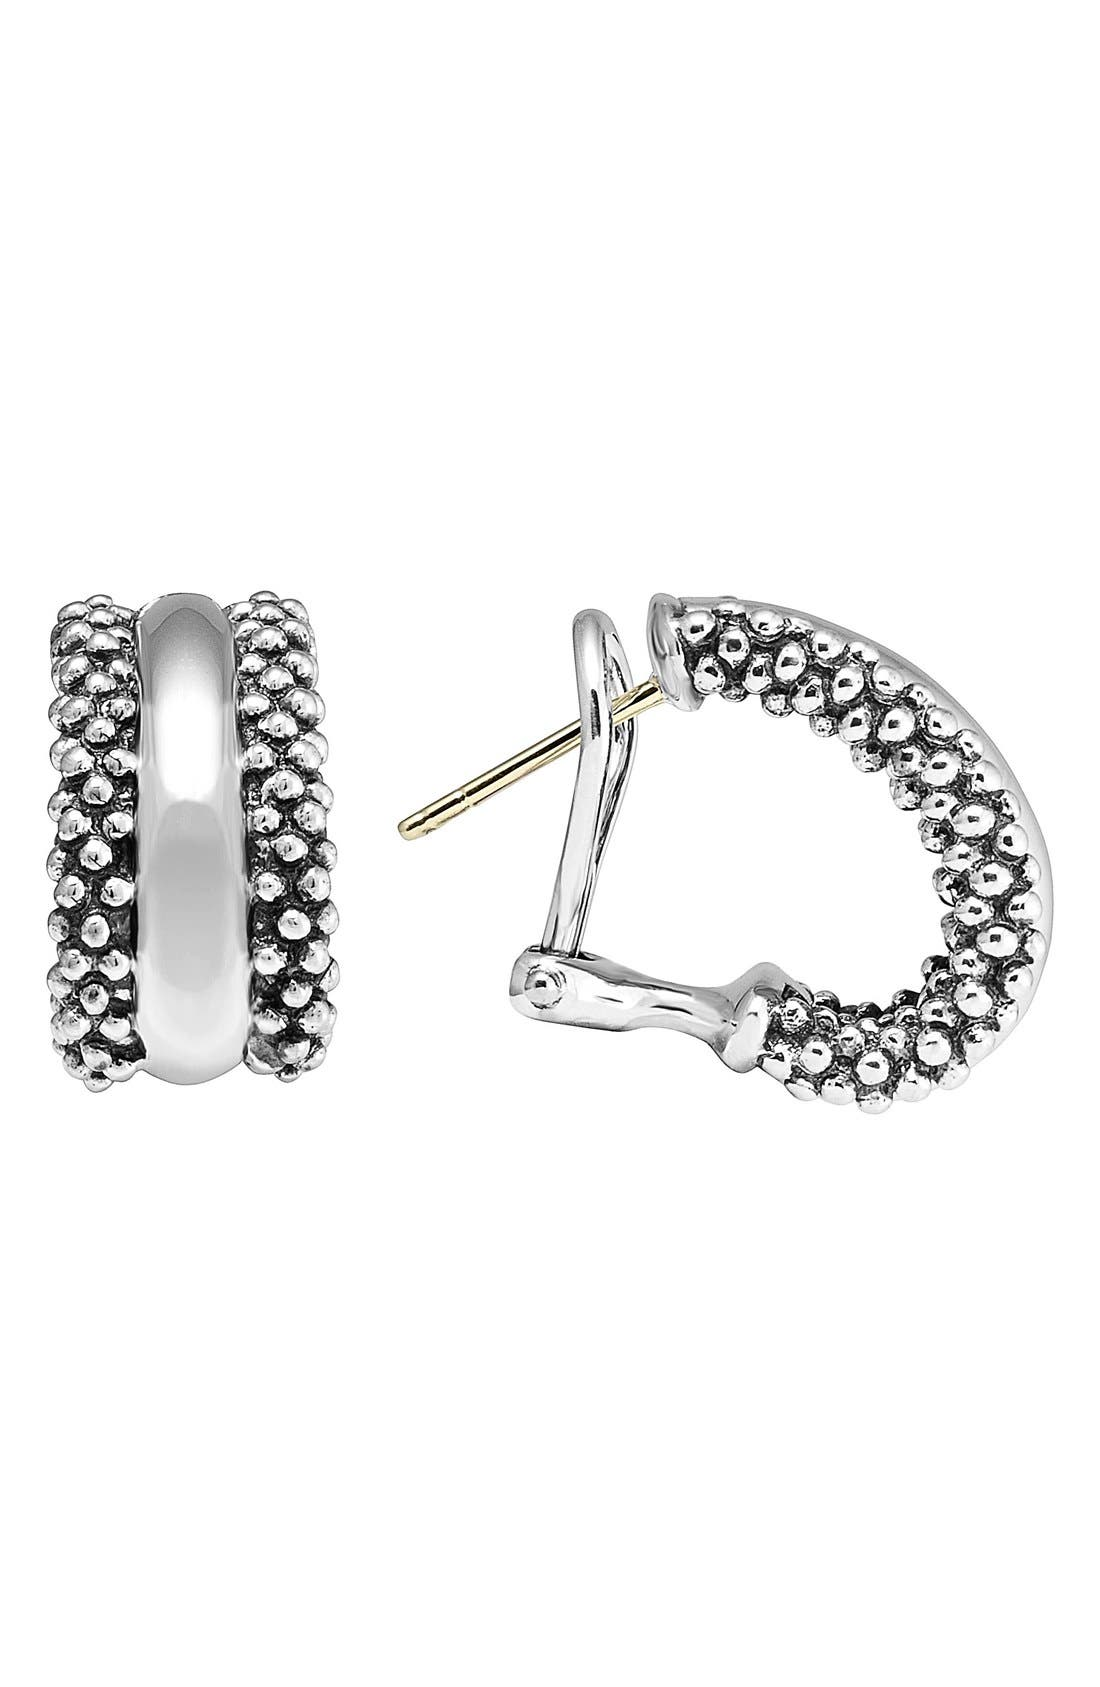 LAGOS Caviar™ Sterling Silver Hoop Earrings